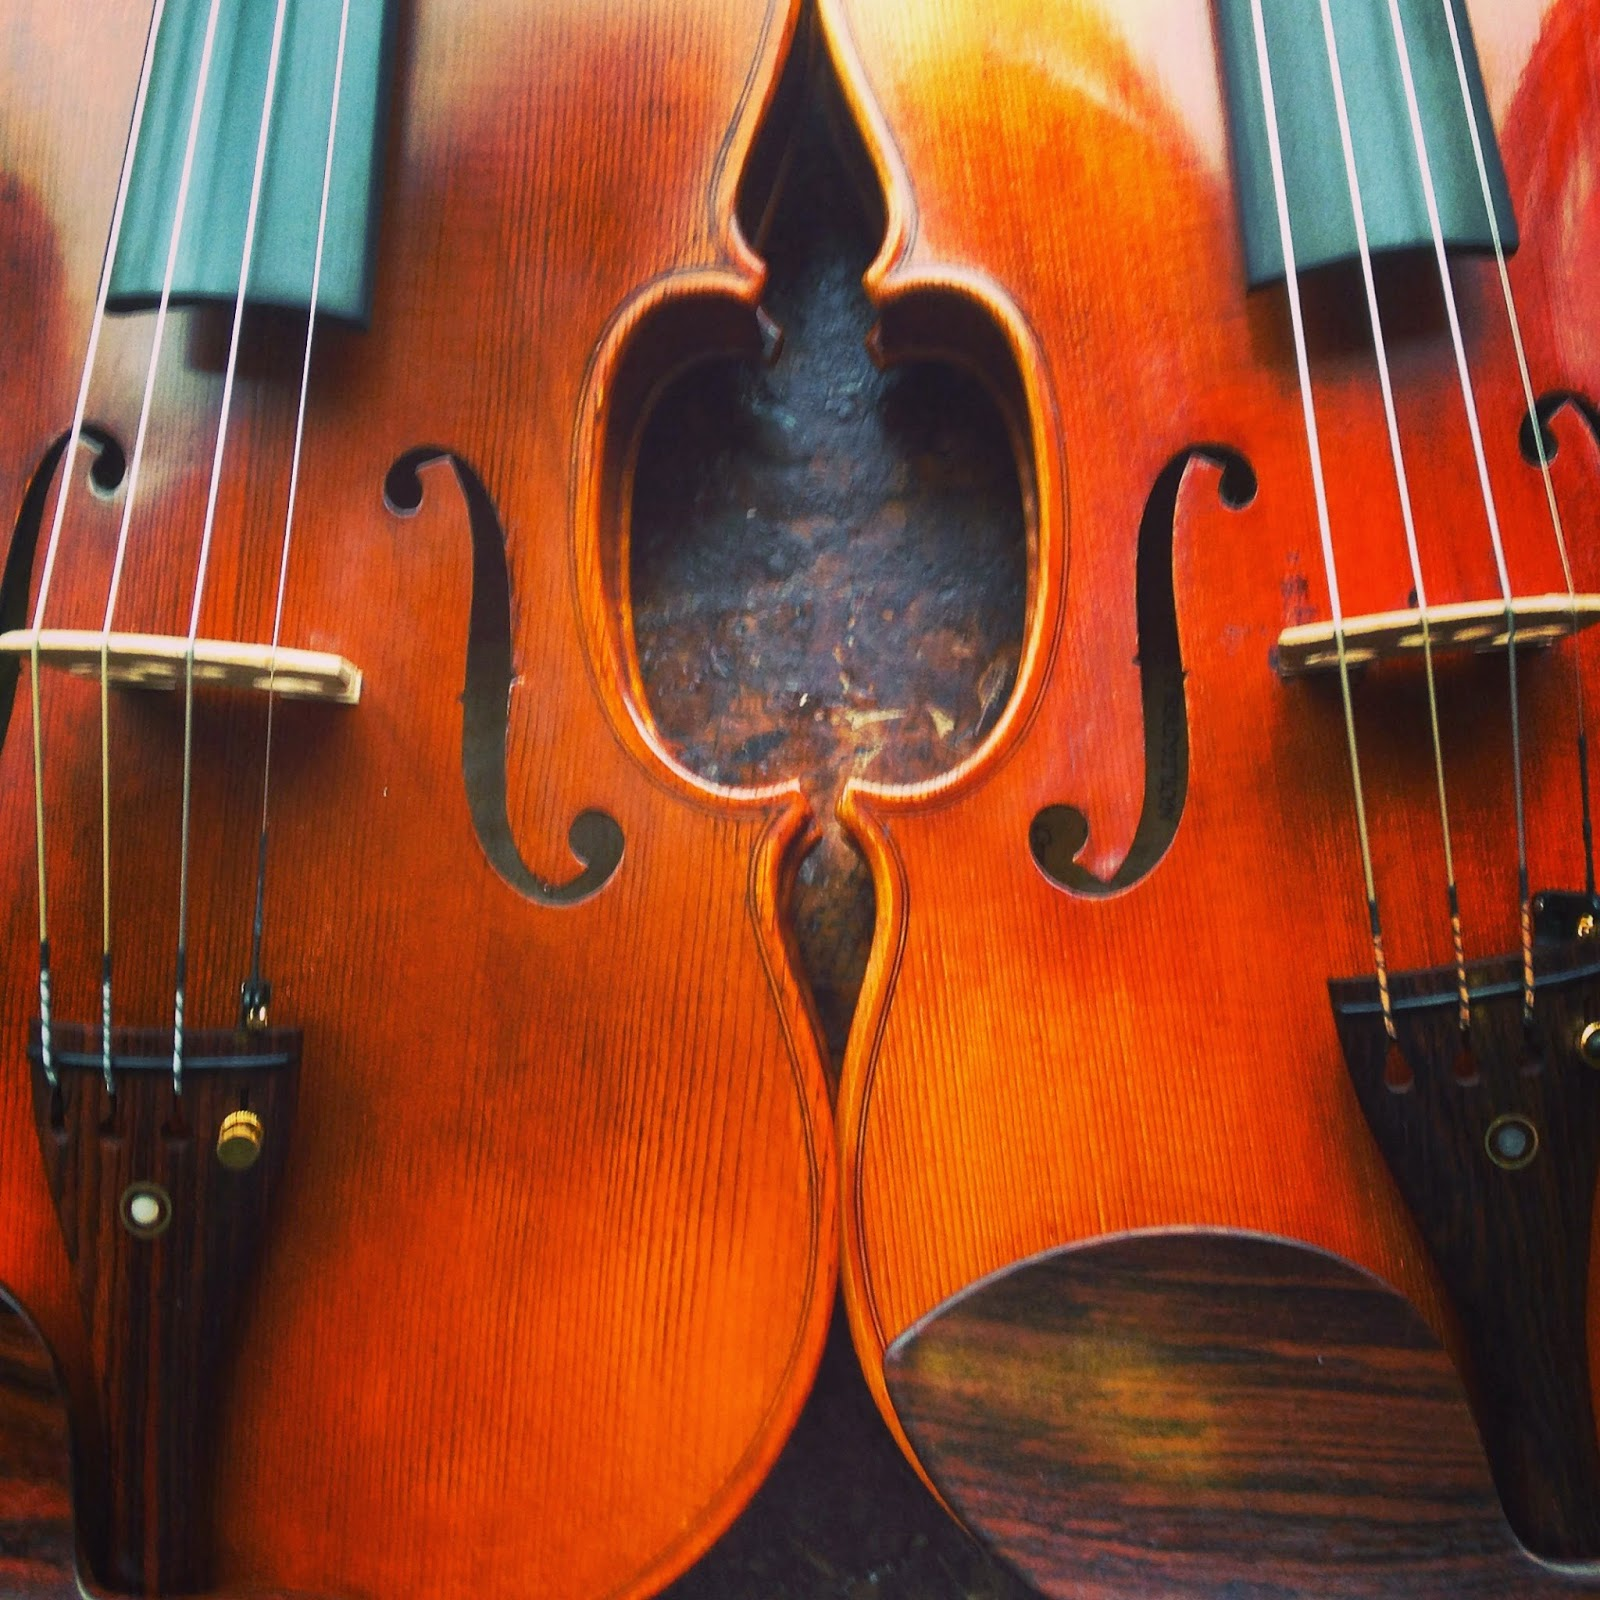 The Violin Shop: These Are A Few of Our Favorite Strings! Part I